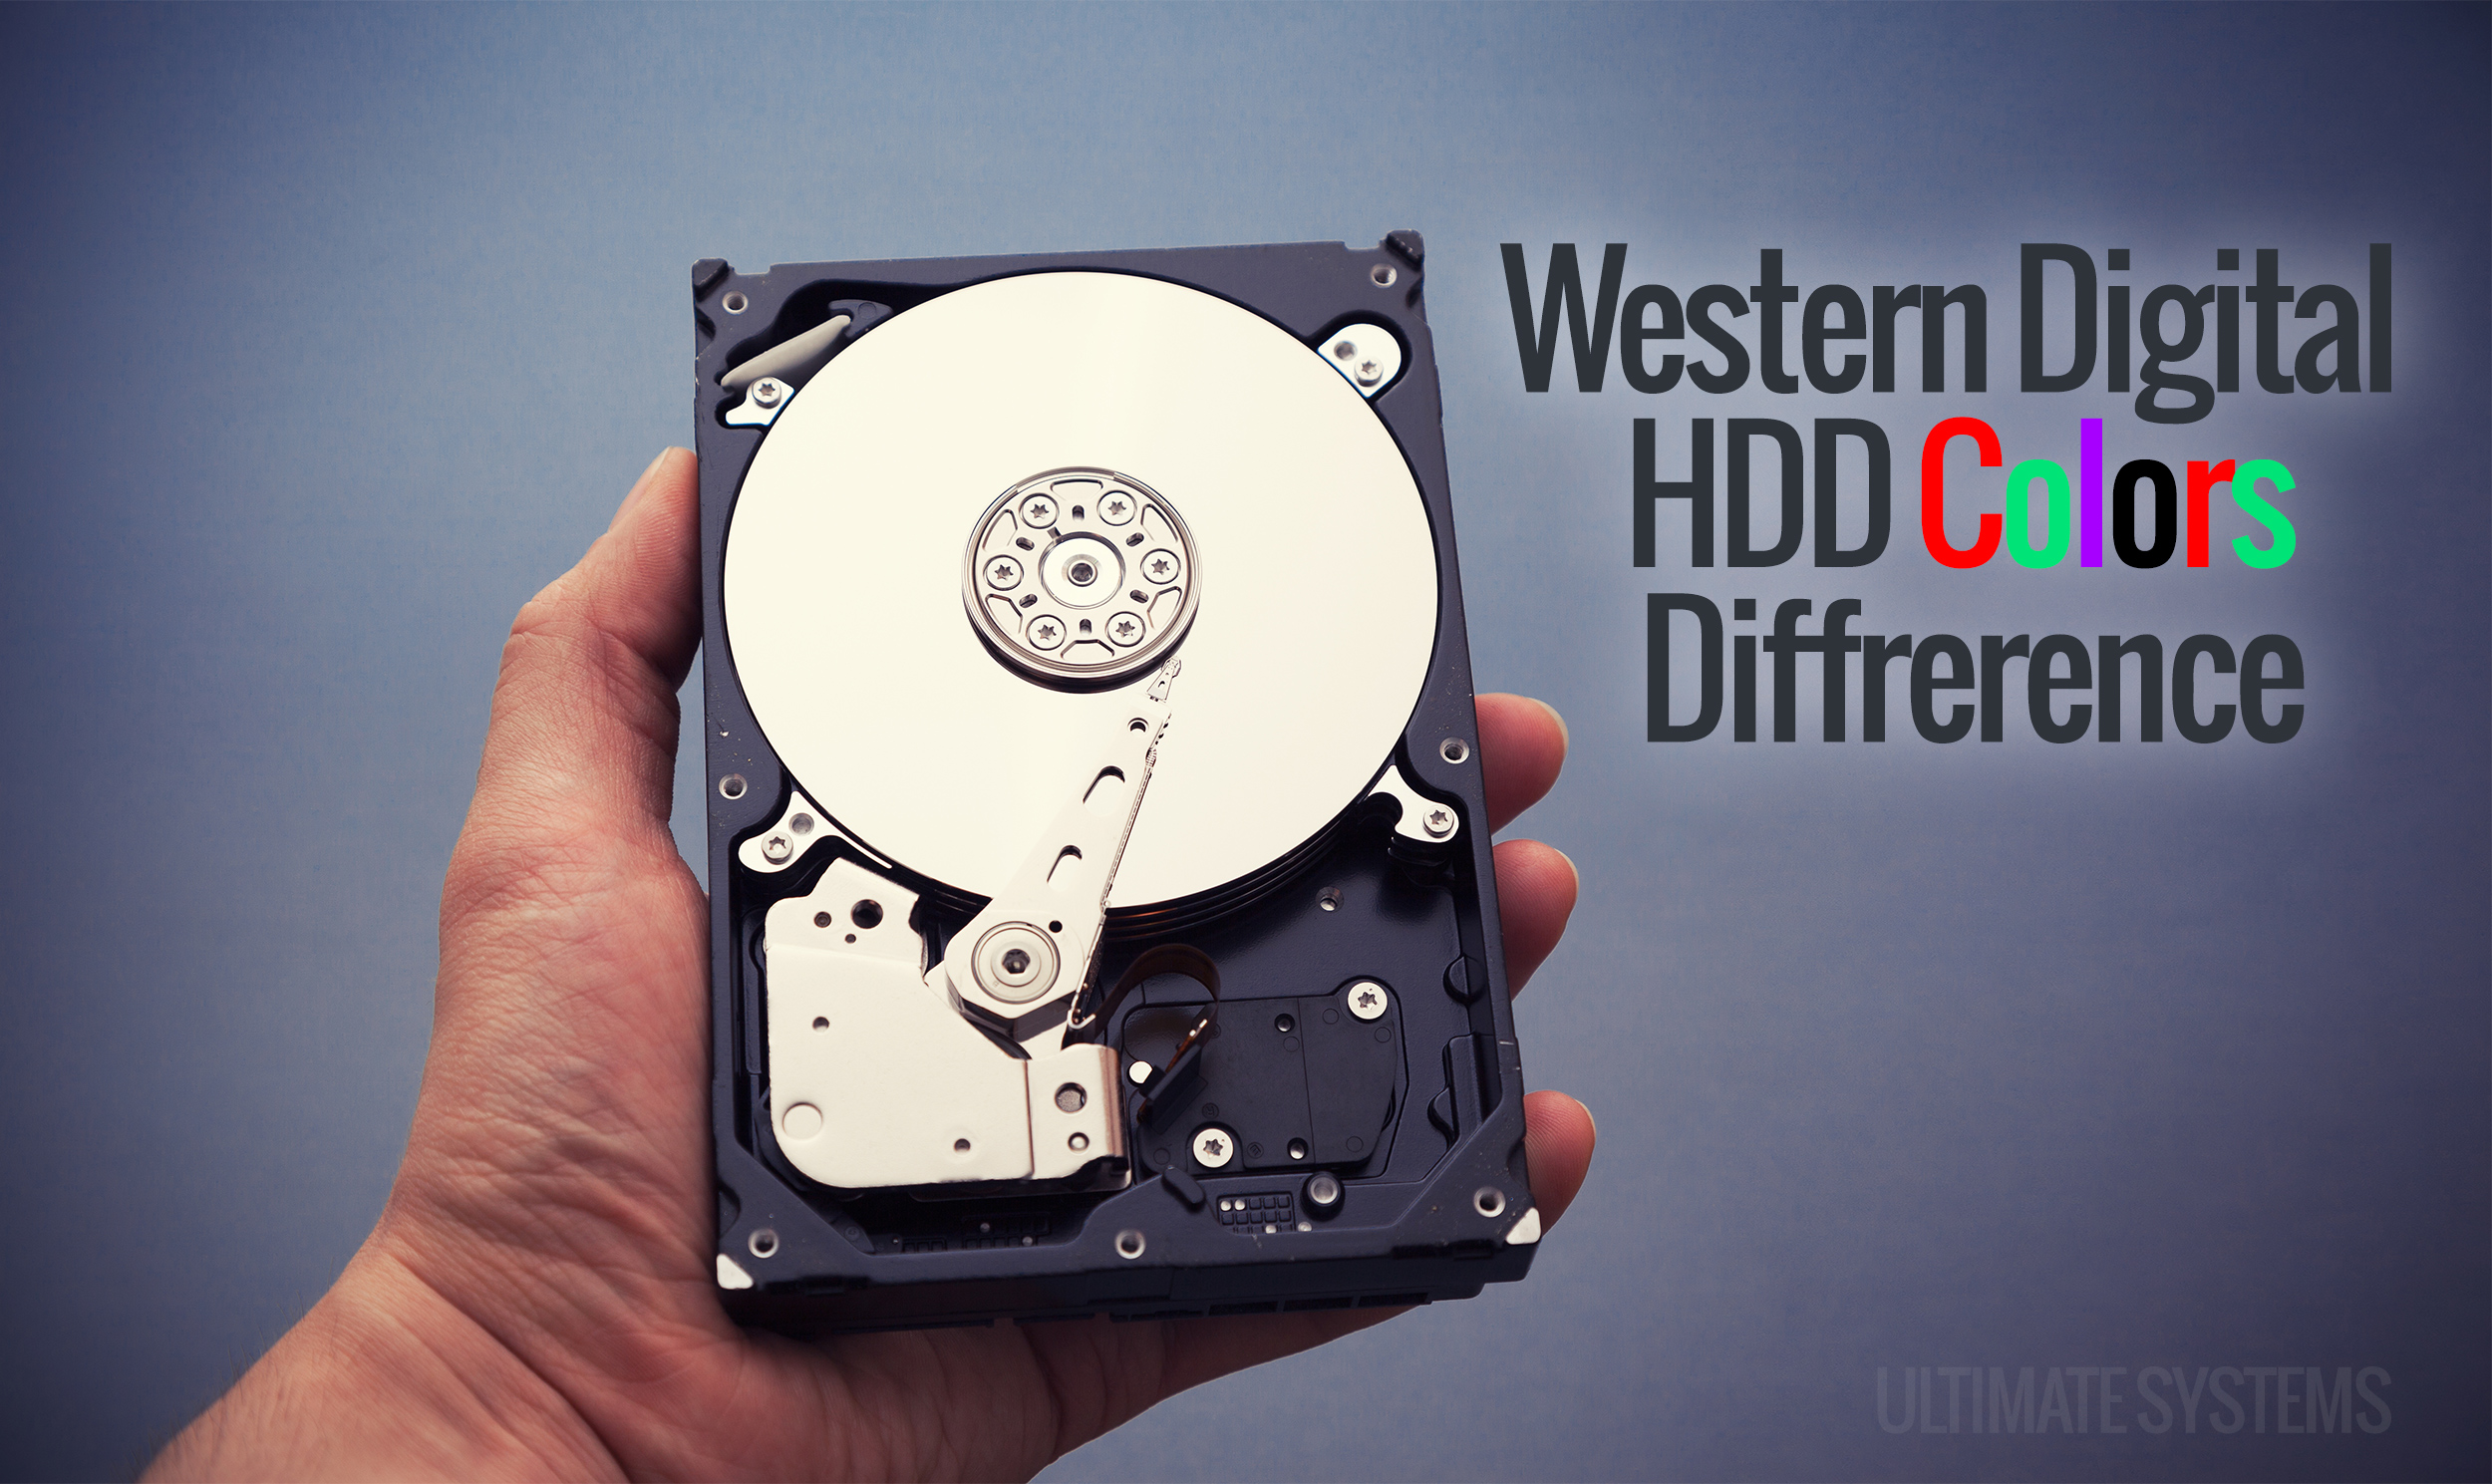 Western Digital Wd Hdd Colors Difference Hardisk Internal Pc 320gb Blue New